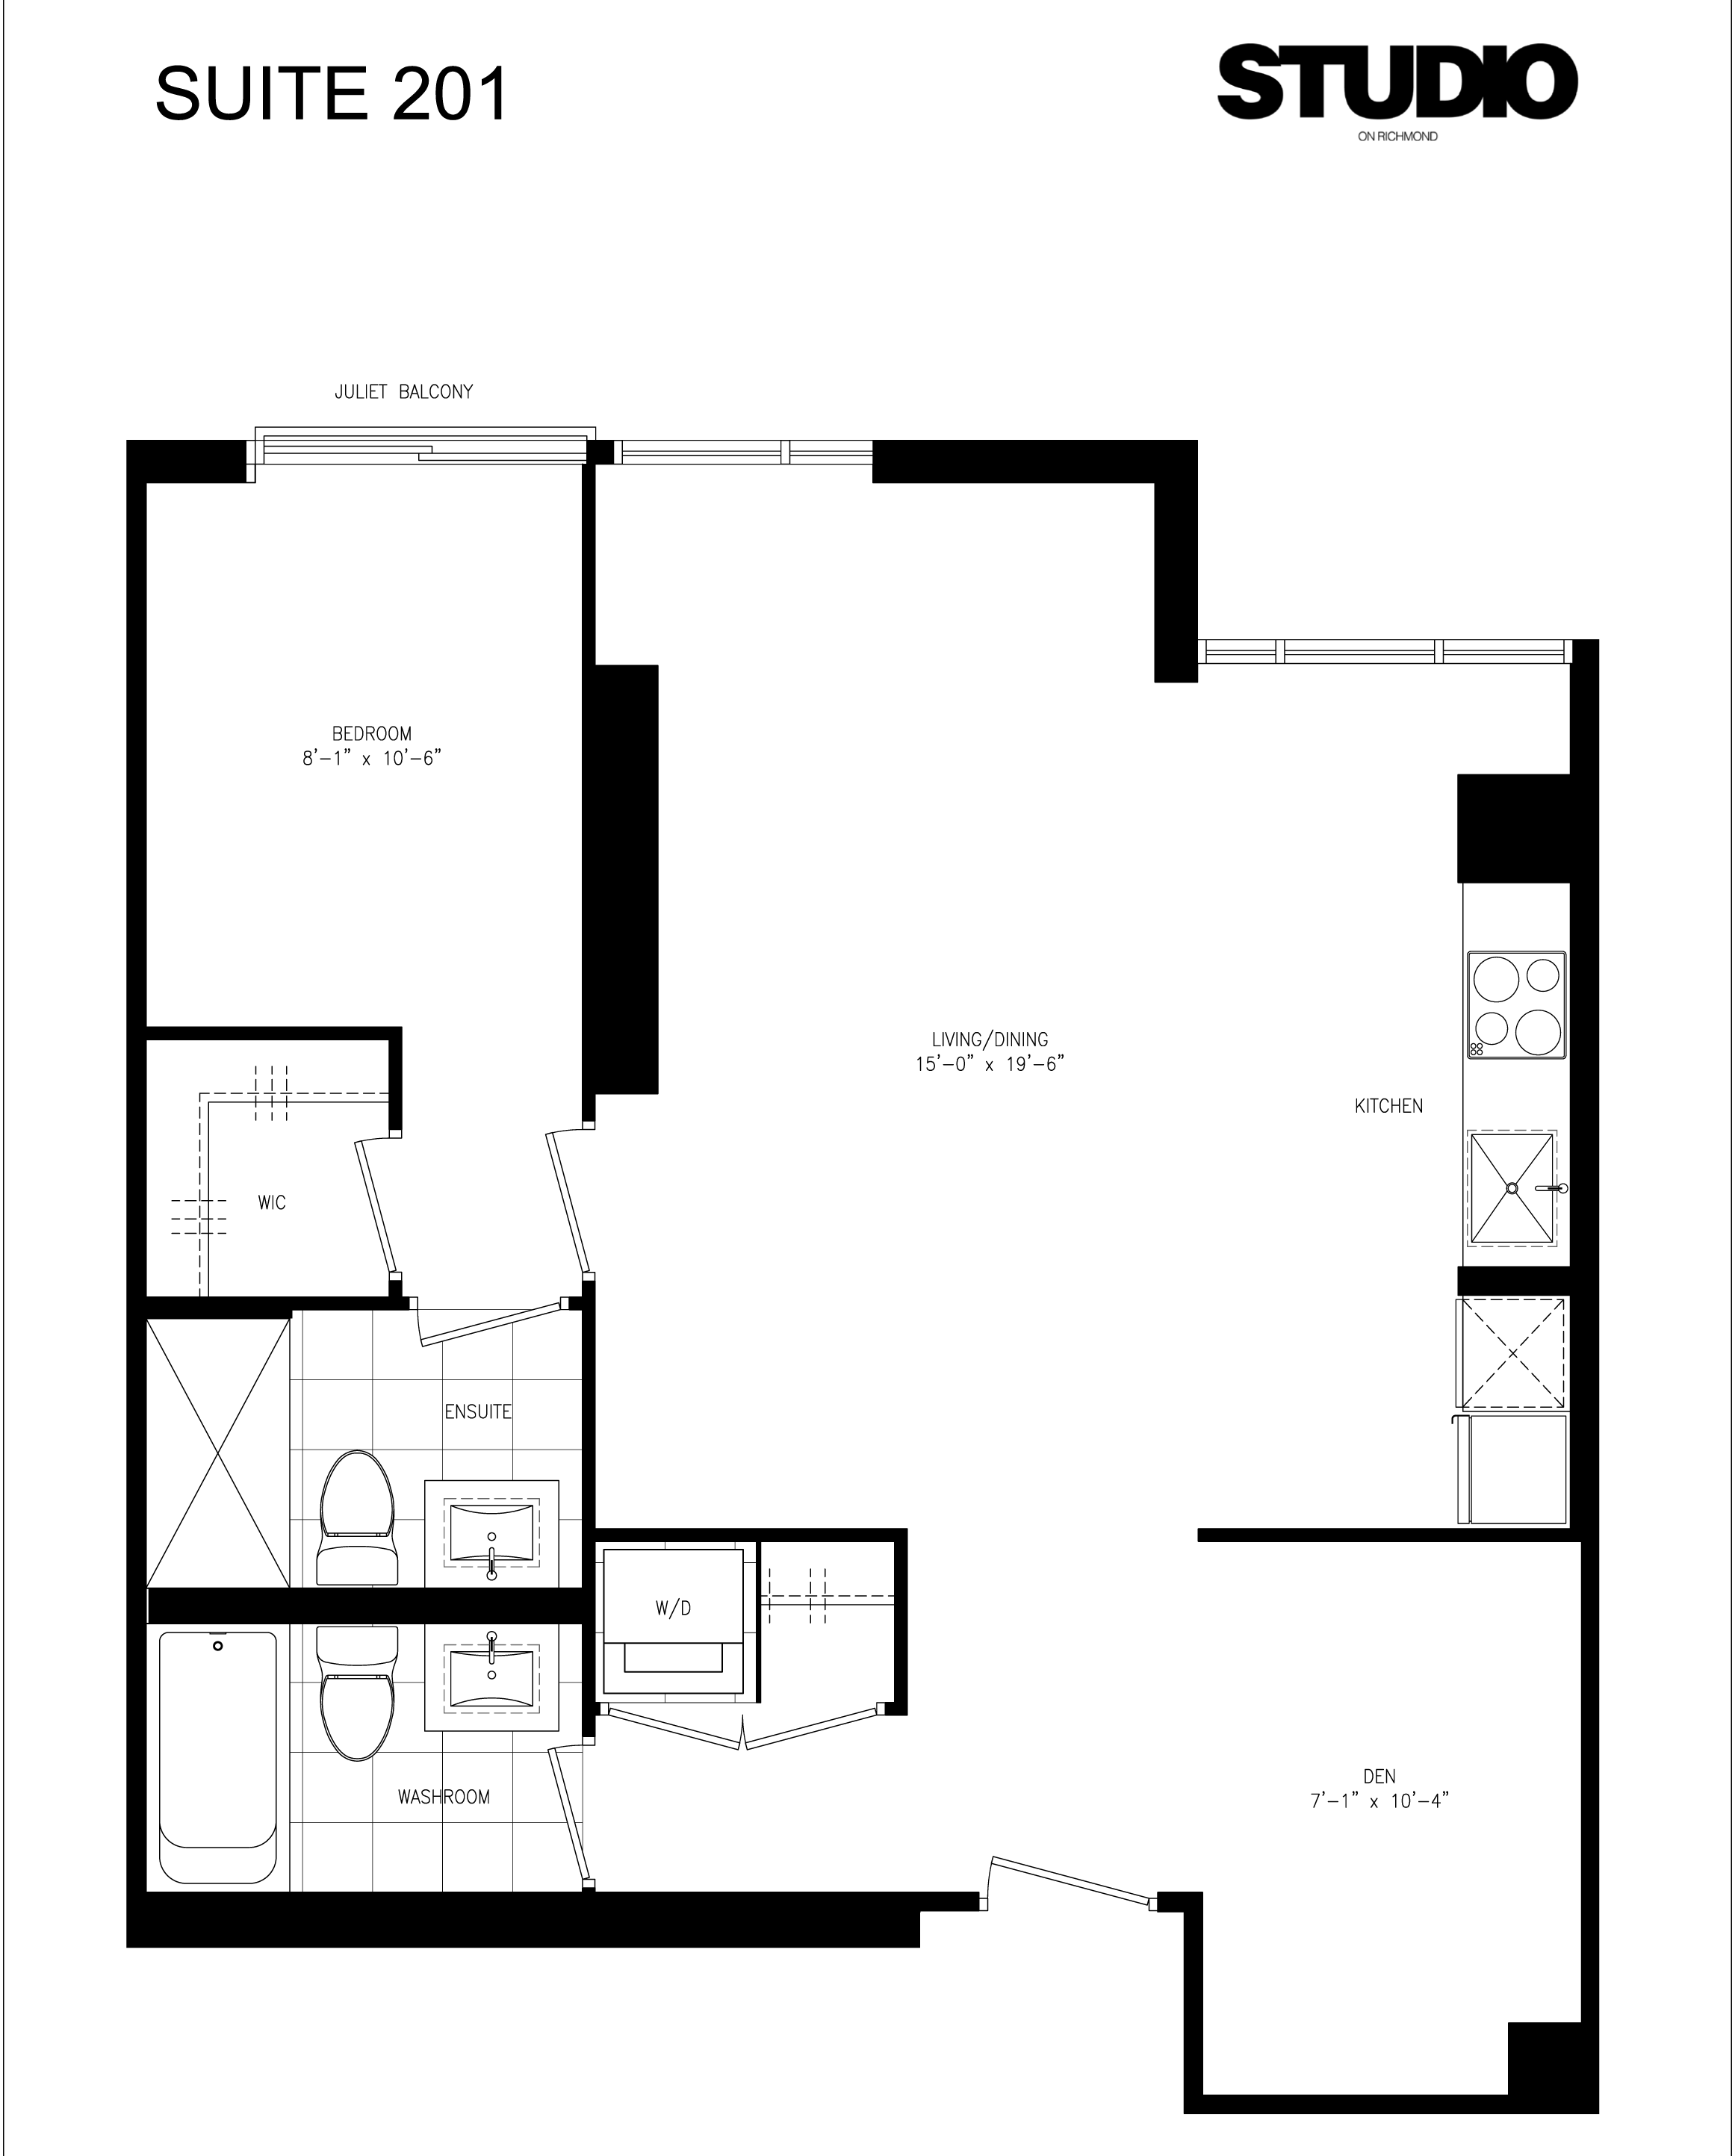 Studio condos on richmond buy sell rent for 101 richmond floor plans